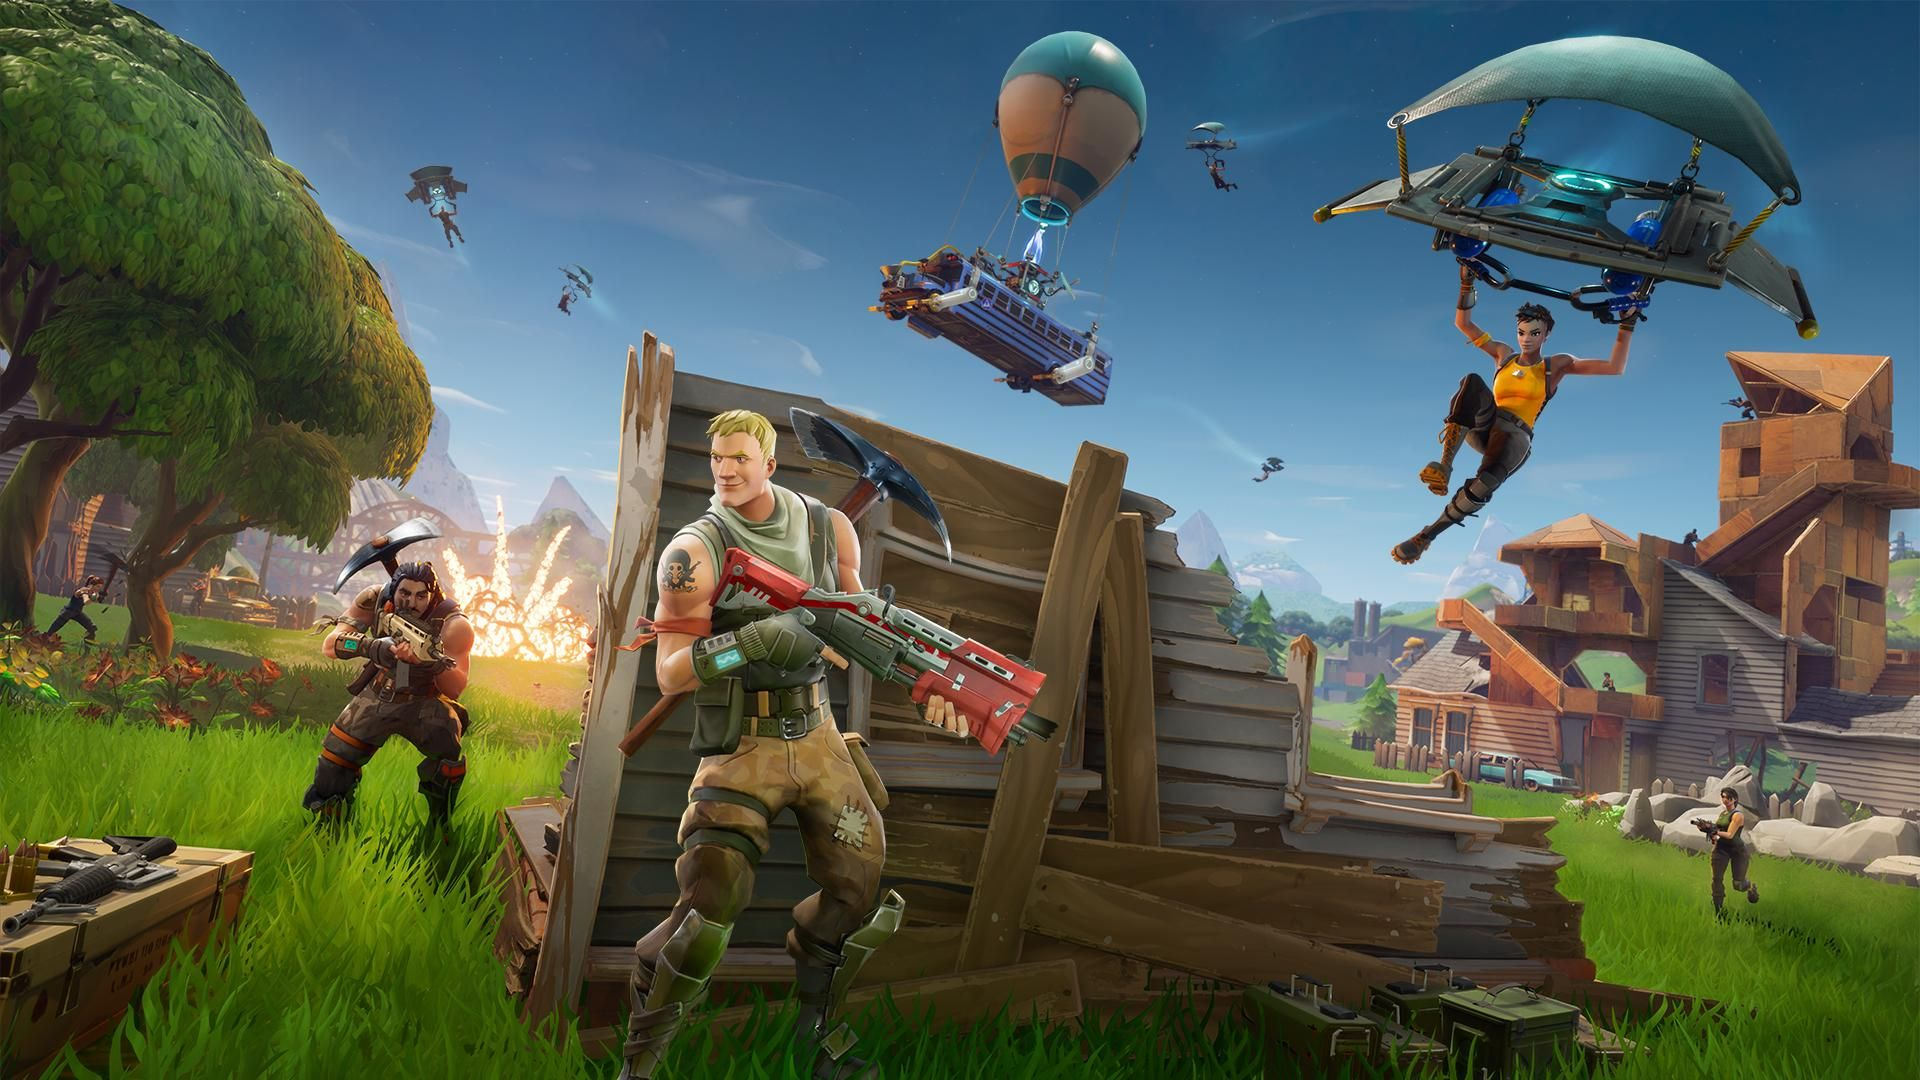 A Guide To Fortnite Battle Royale The Video Game Taking Over The